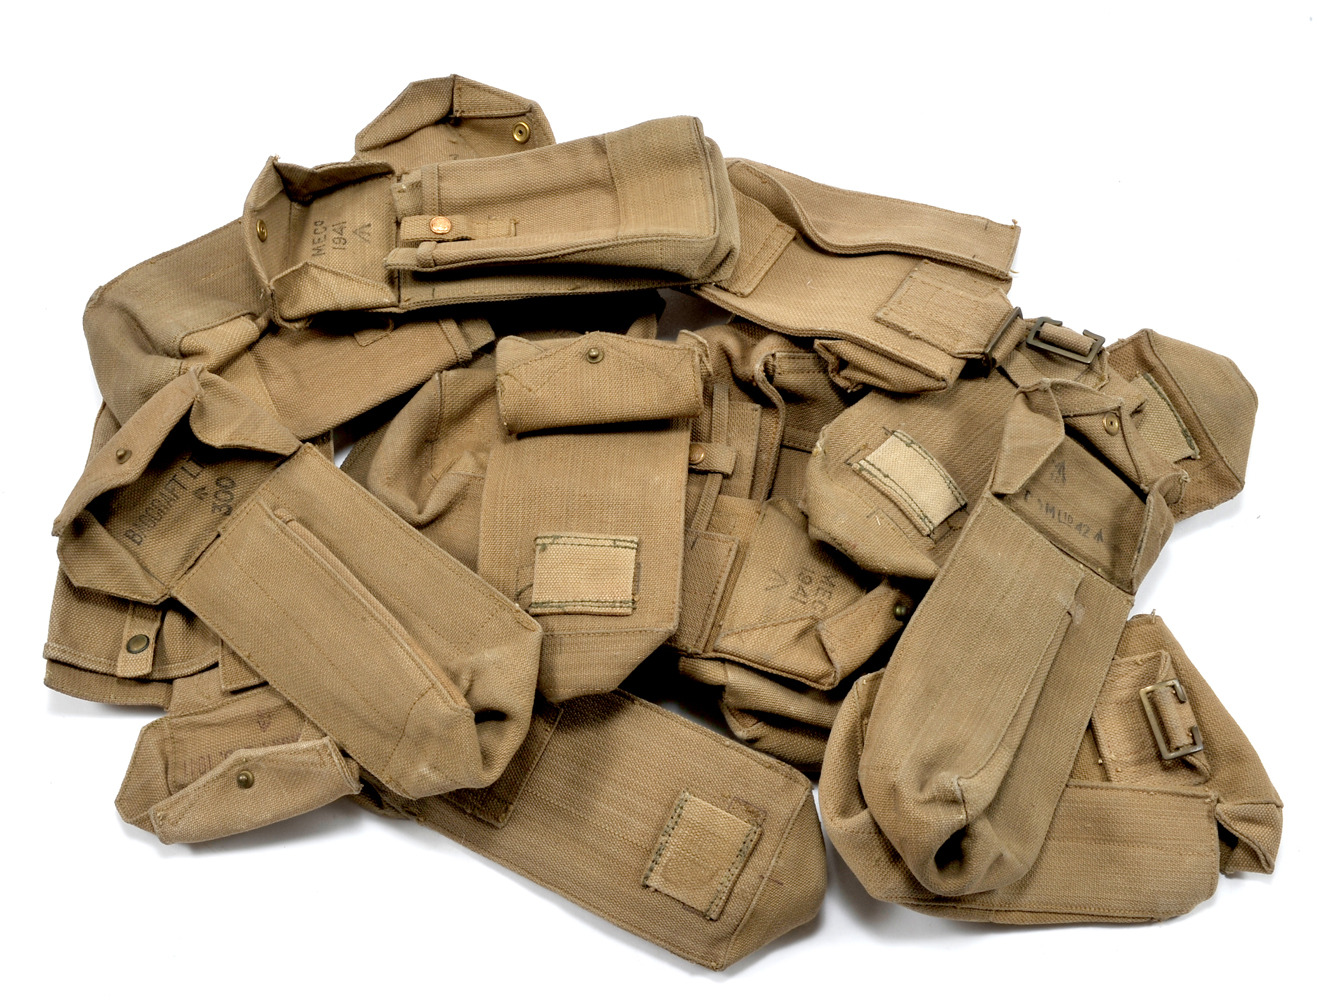 Details about Original British WW2 Ammunition Pouch Free shipping from USA